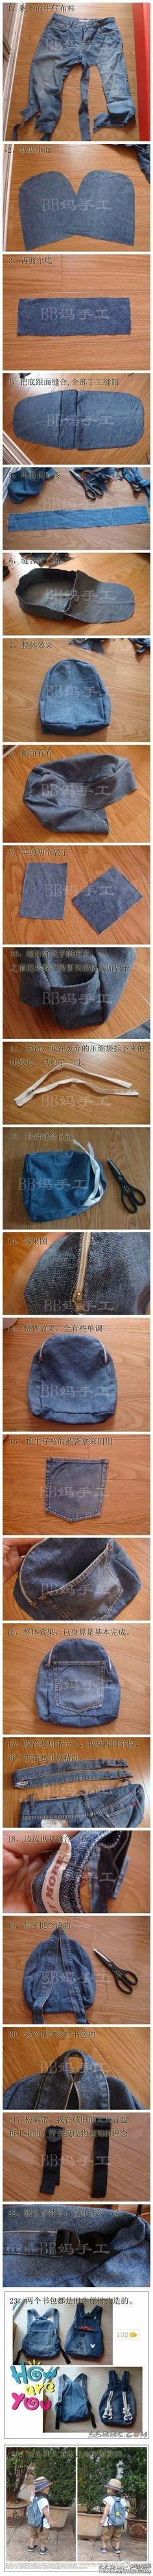 jean backpack DIY by bonniemae. Good for jeans that you can't wear anymore. - - jean backpack DIY by bonniemae. Good for jeans that you can't wear anymore. Diy Jeans, Recycle Jeans, Mochila Jeans, Jean Diy, Artisanats Denim, Sewing Crafts, Sewing Projects, Jean Backpack, Small Backpack